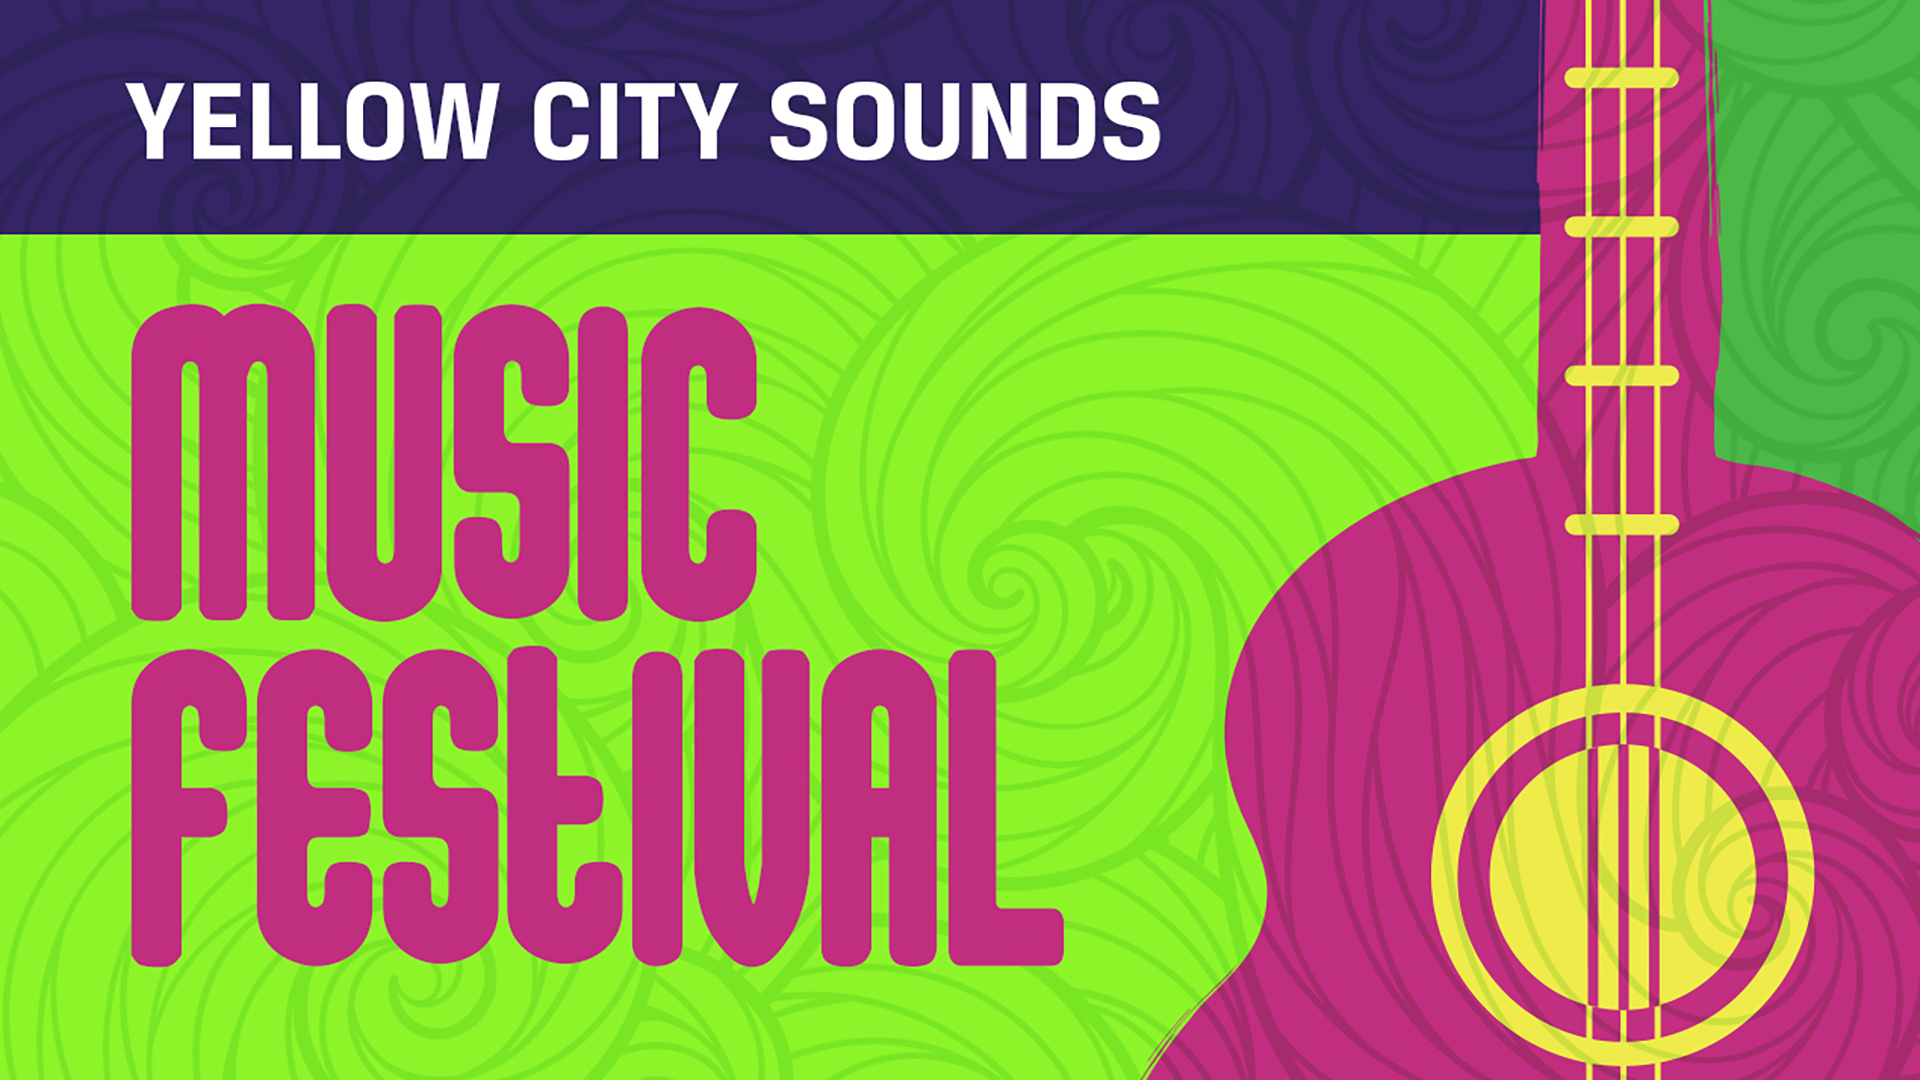 Labor Day Roundup: Yellow City Sounds Music Festival, Boys Ranch Rodeo, Nitro Circus Live, more